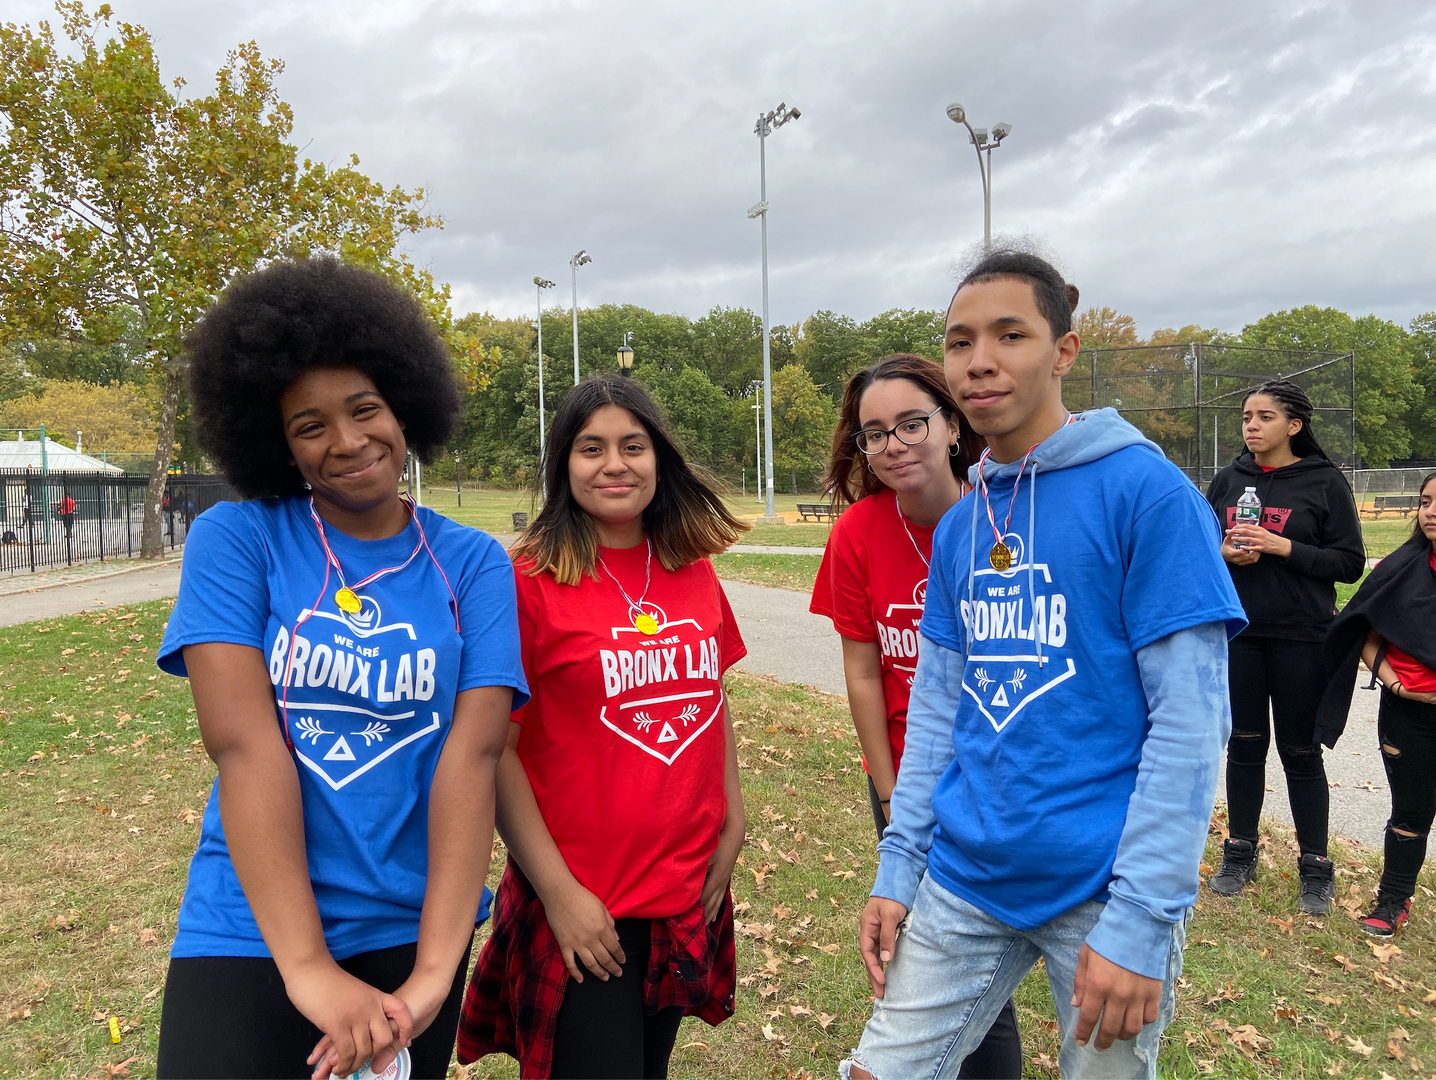 Students wearing colorful Bronx Lab t-shirts stand on the lawn